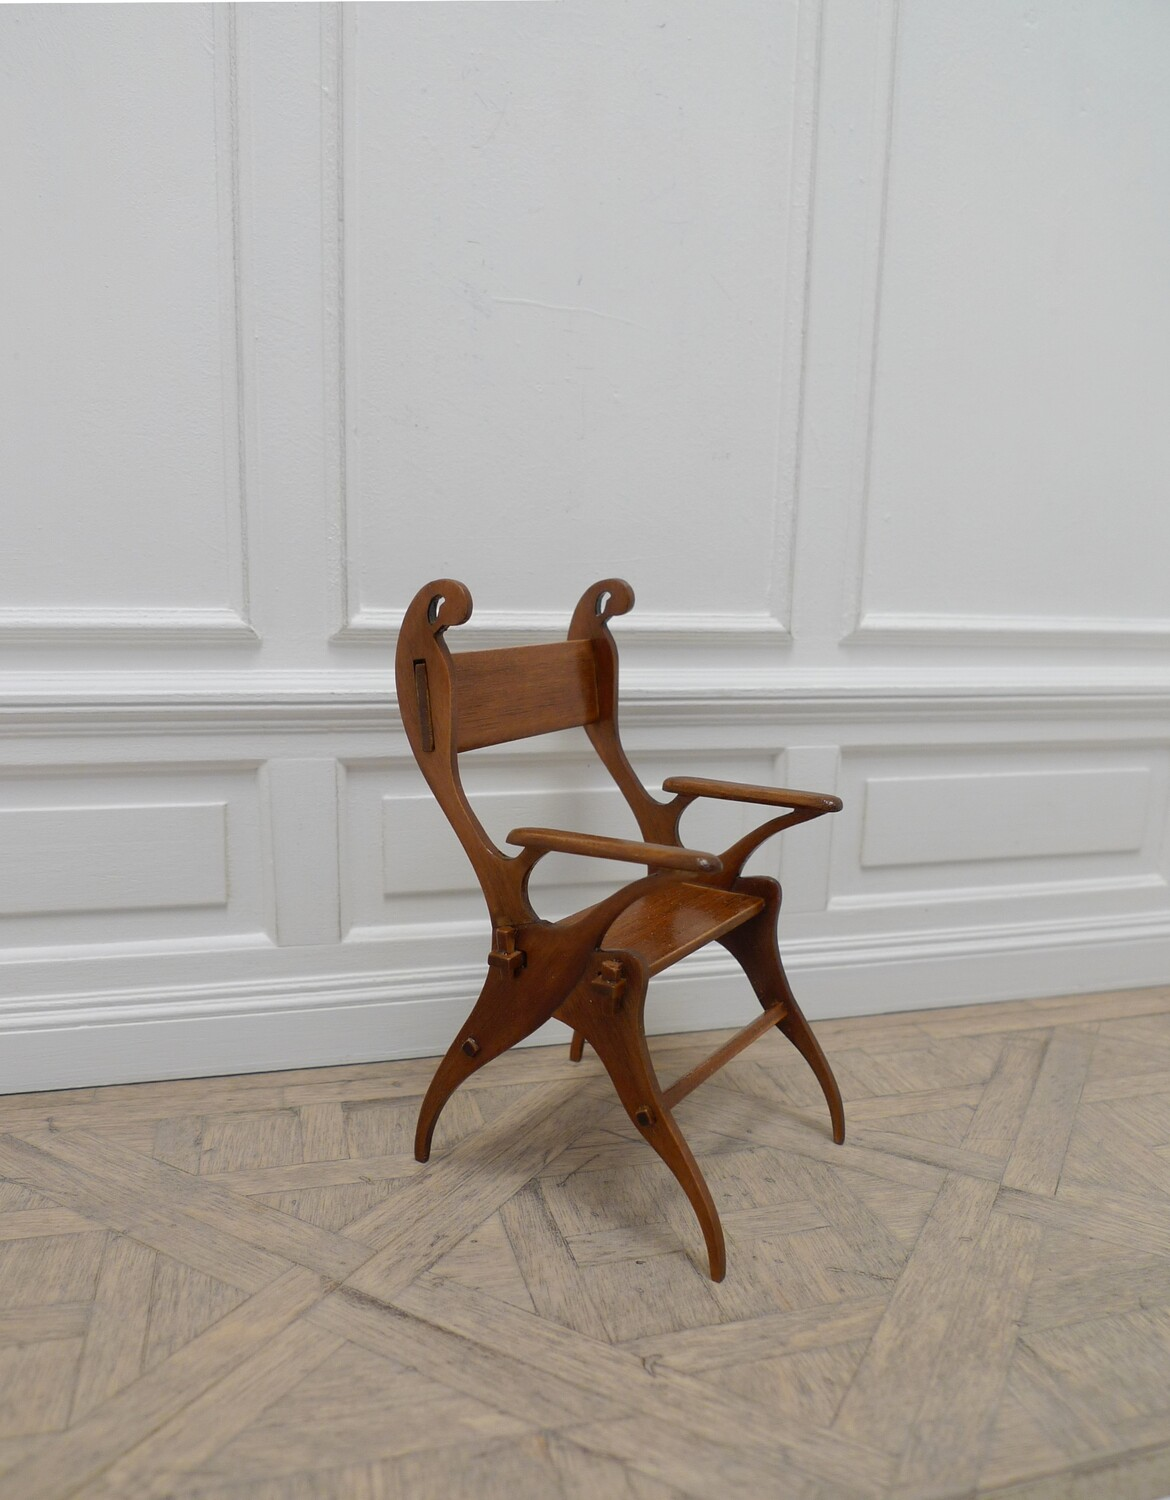 Swan chair by C F A Voysey